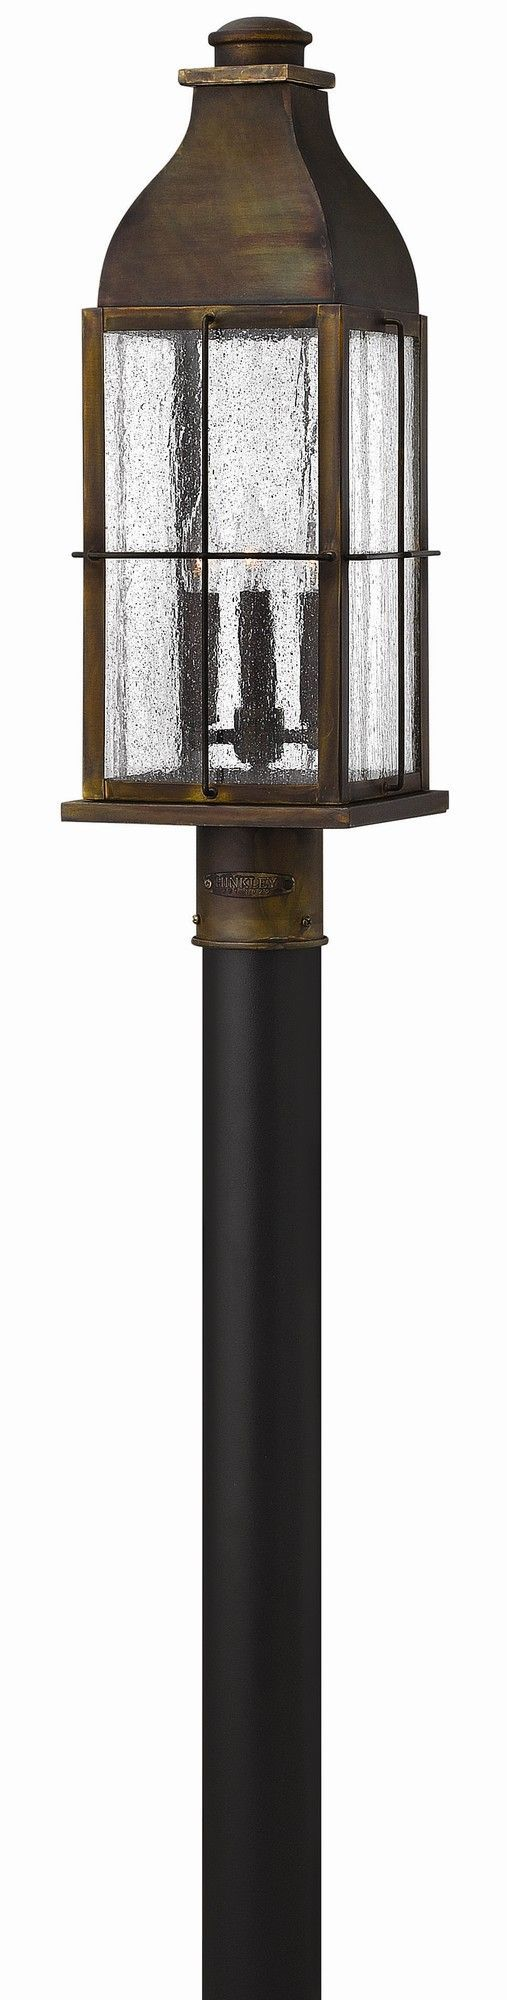 Features:  -Bingham collection.  -Outdoor post lantern.  Fixture Material: -Metal. Dimensions:  Overall Product Weight: -10 lbs.  --Bingham's traditional style recalls a turn of the century gas light